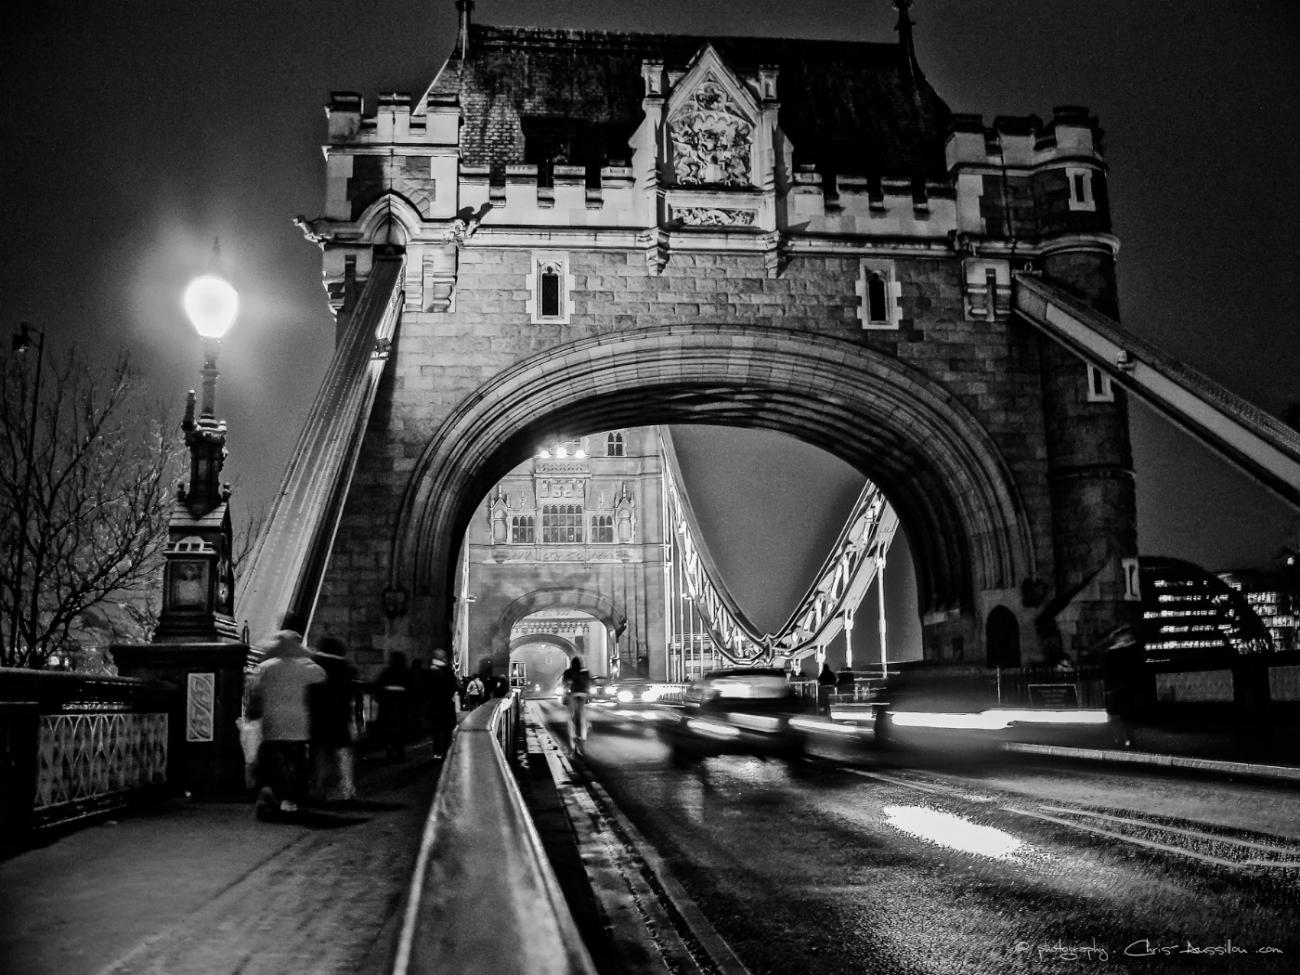 Tower Bridge Christian Aussillou Photographe Londres elovart Samantha Salloum